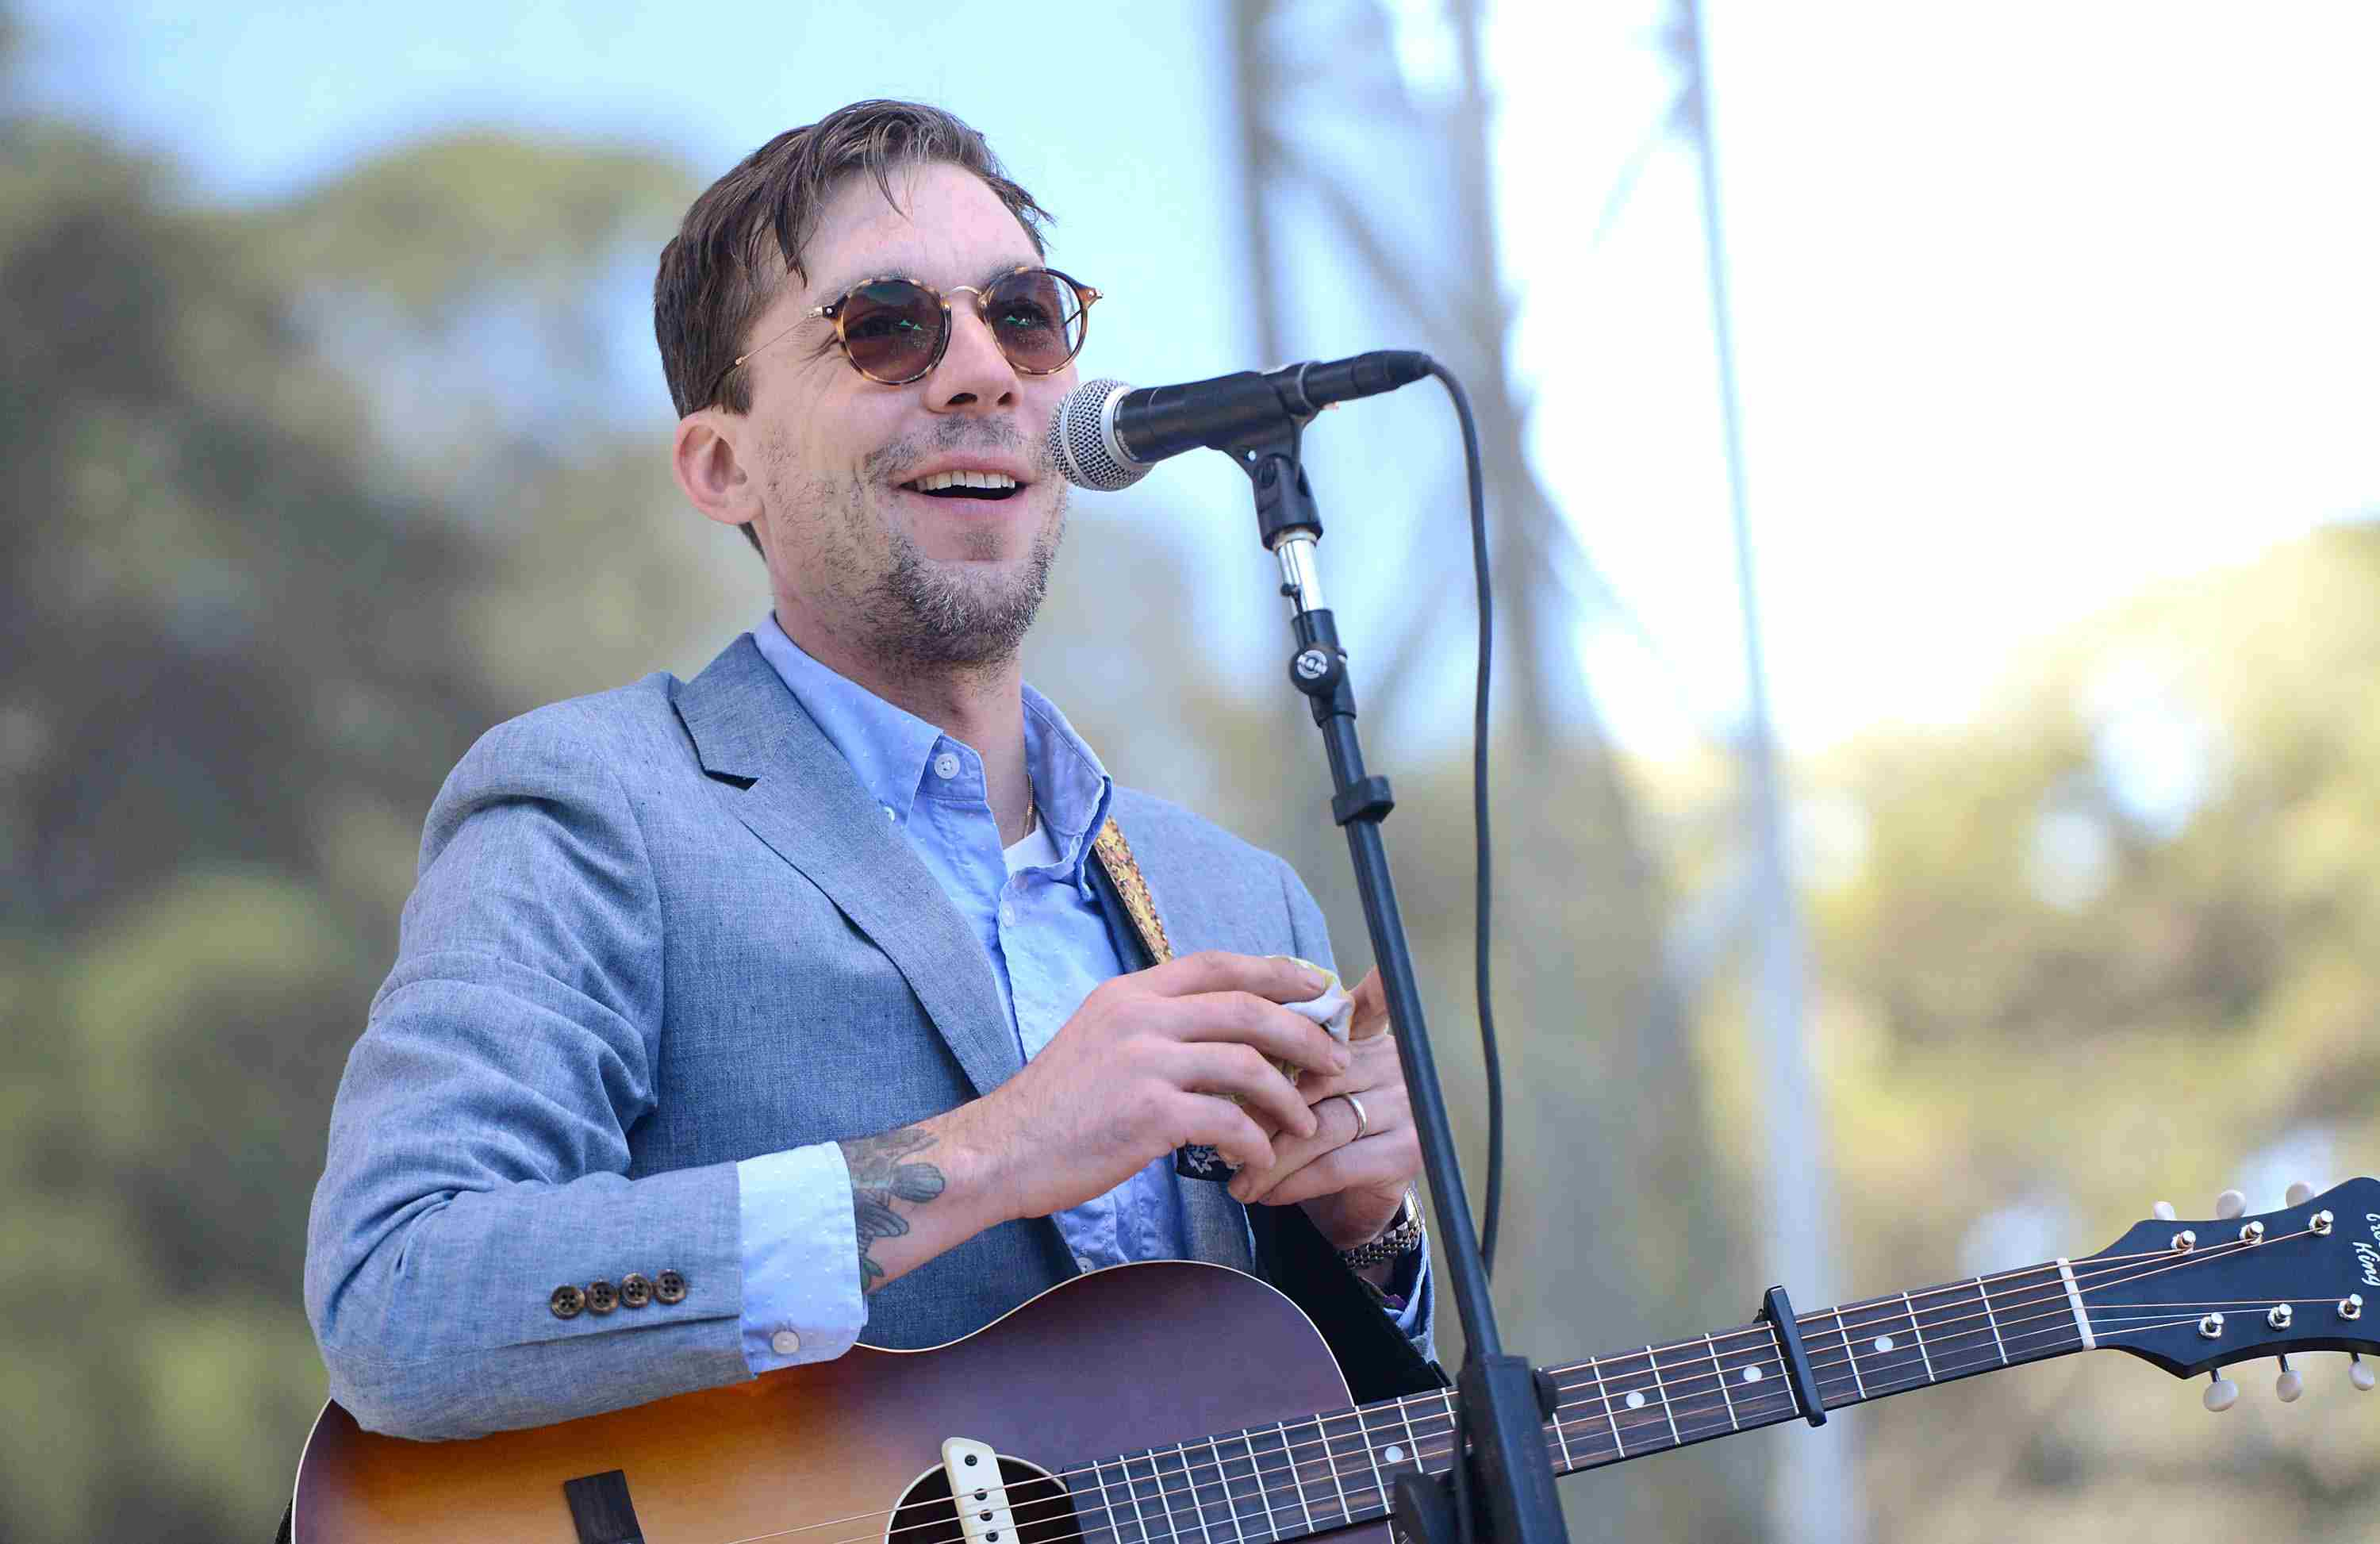 Justin Townes Earle at an outdoor concert